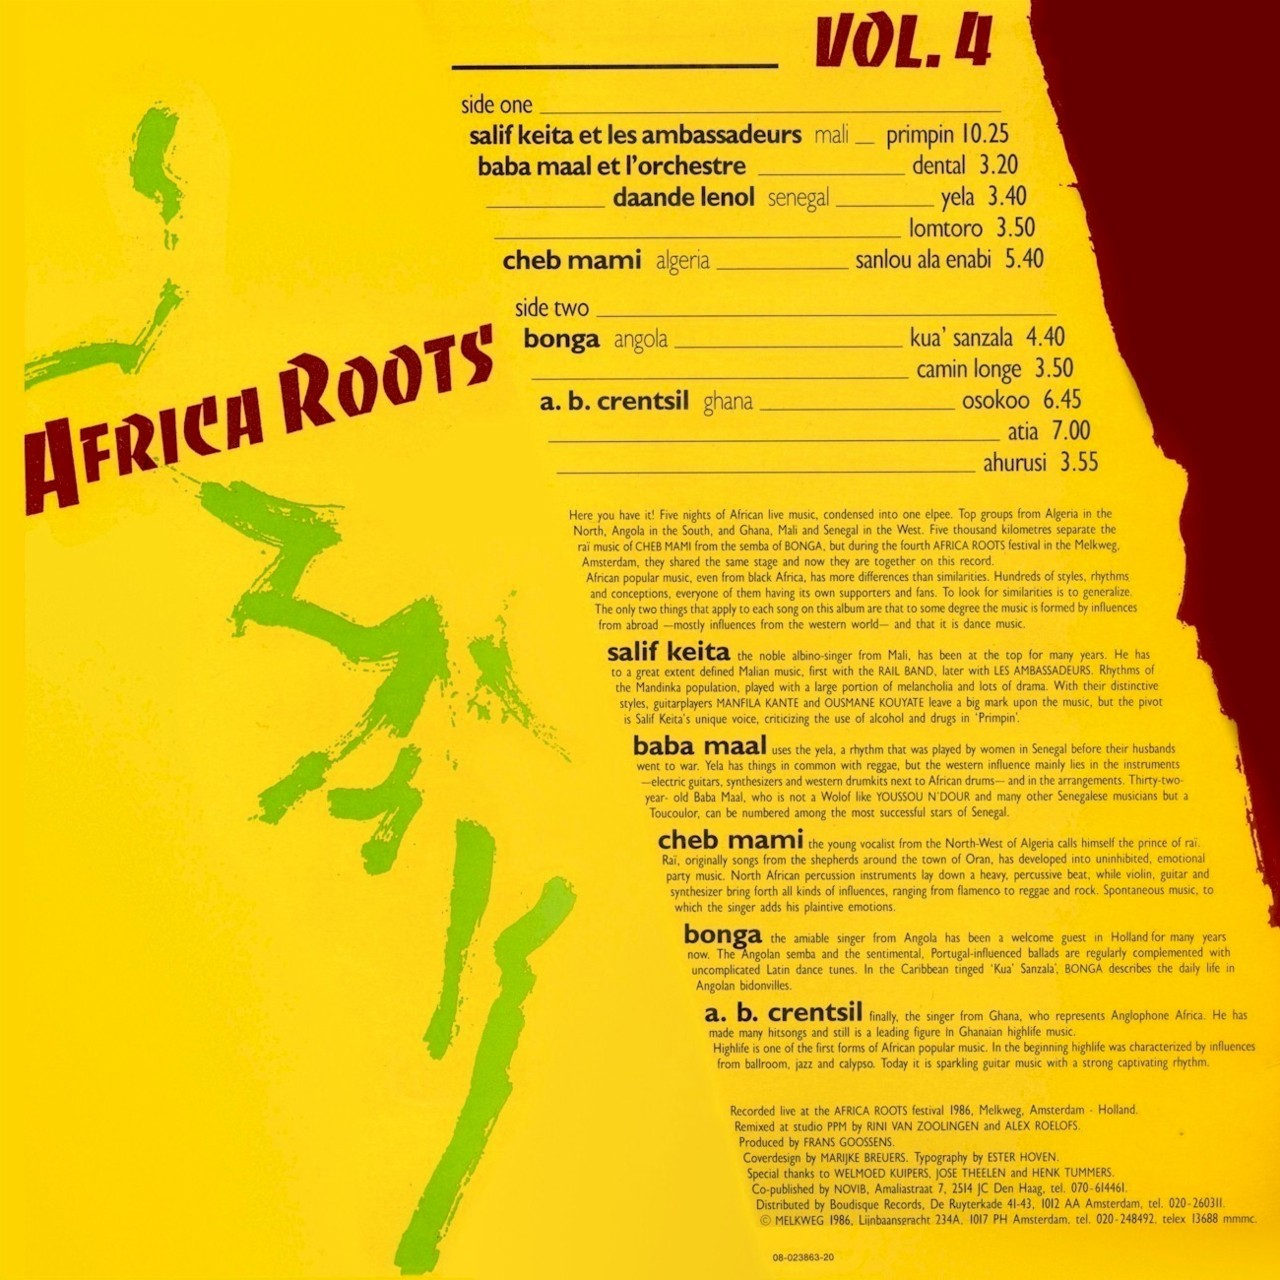 Summer time jams: Enjoy African Roots Volume 4. Featuring Senegal's Baaba Maal, Algeria's Cheb Mami, Angola's Bonga and A.B. Crentsil from Ghana. Click through to listen